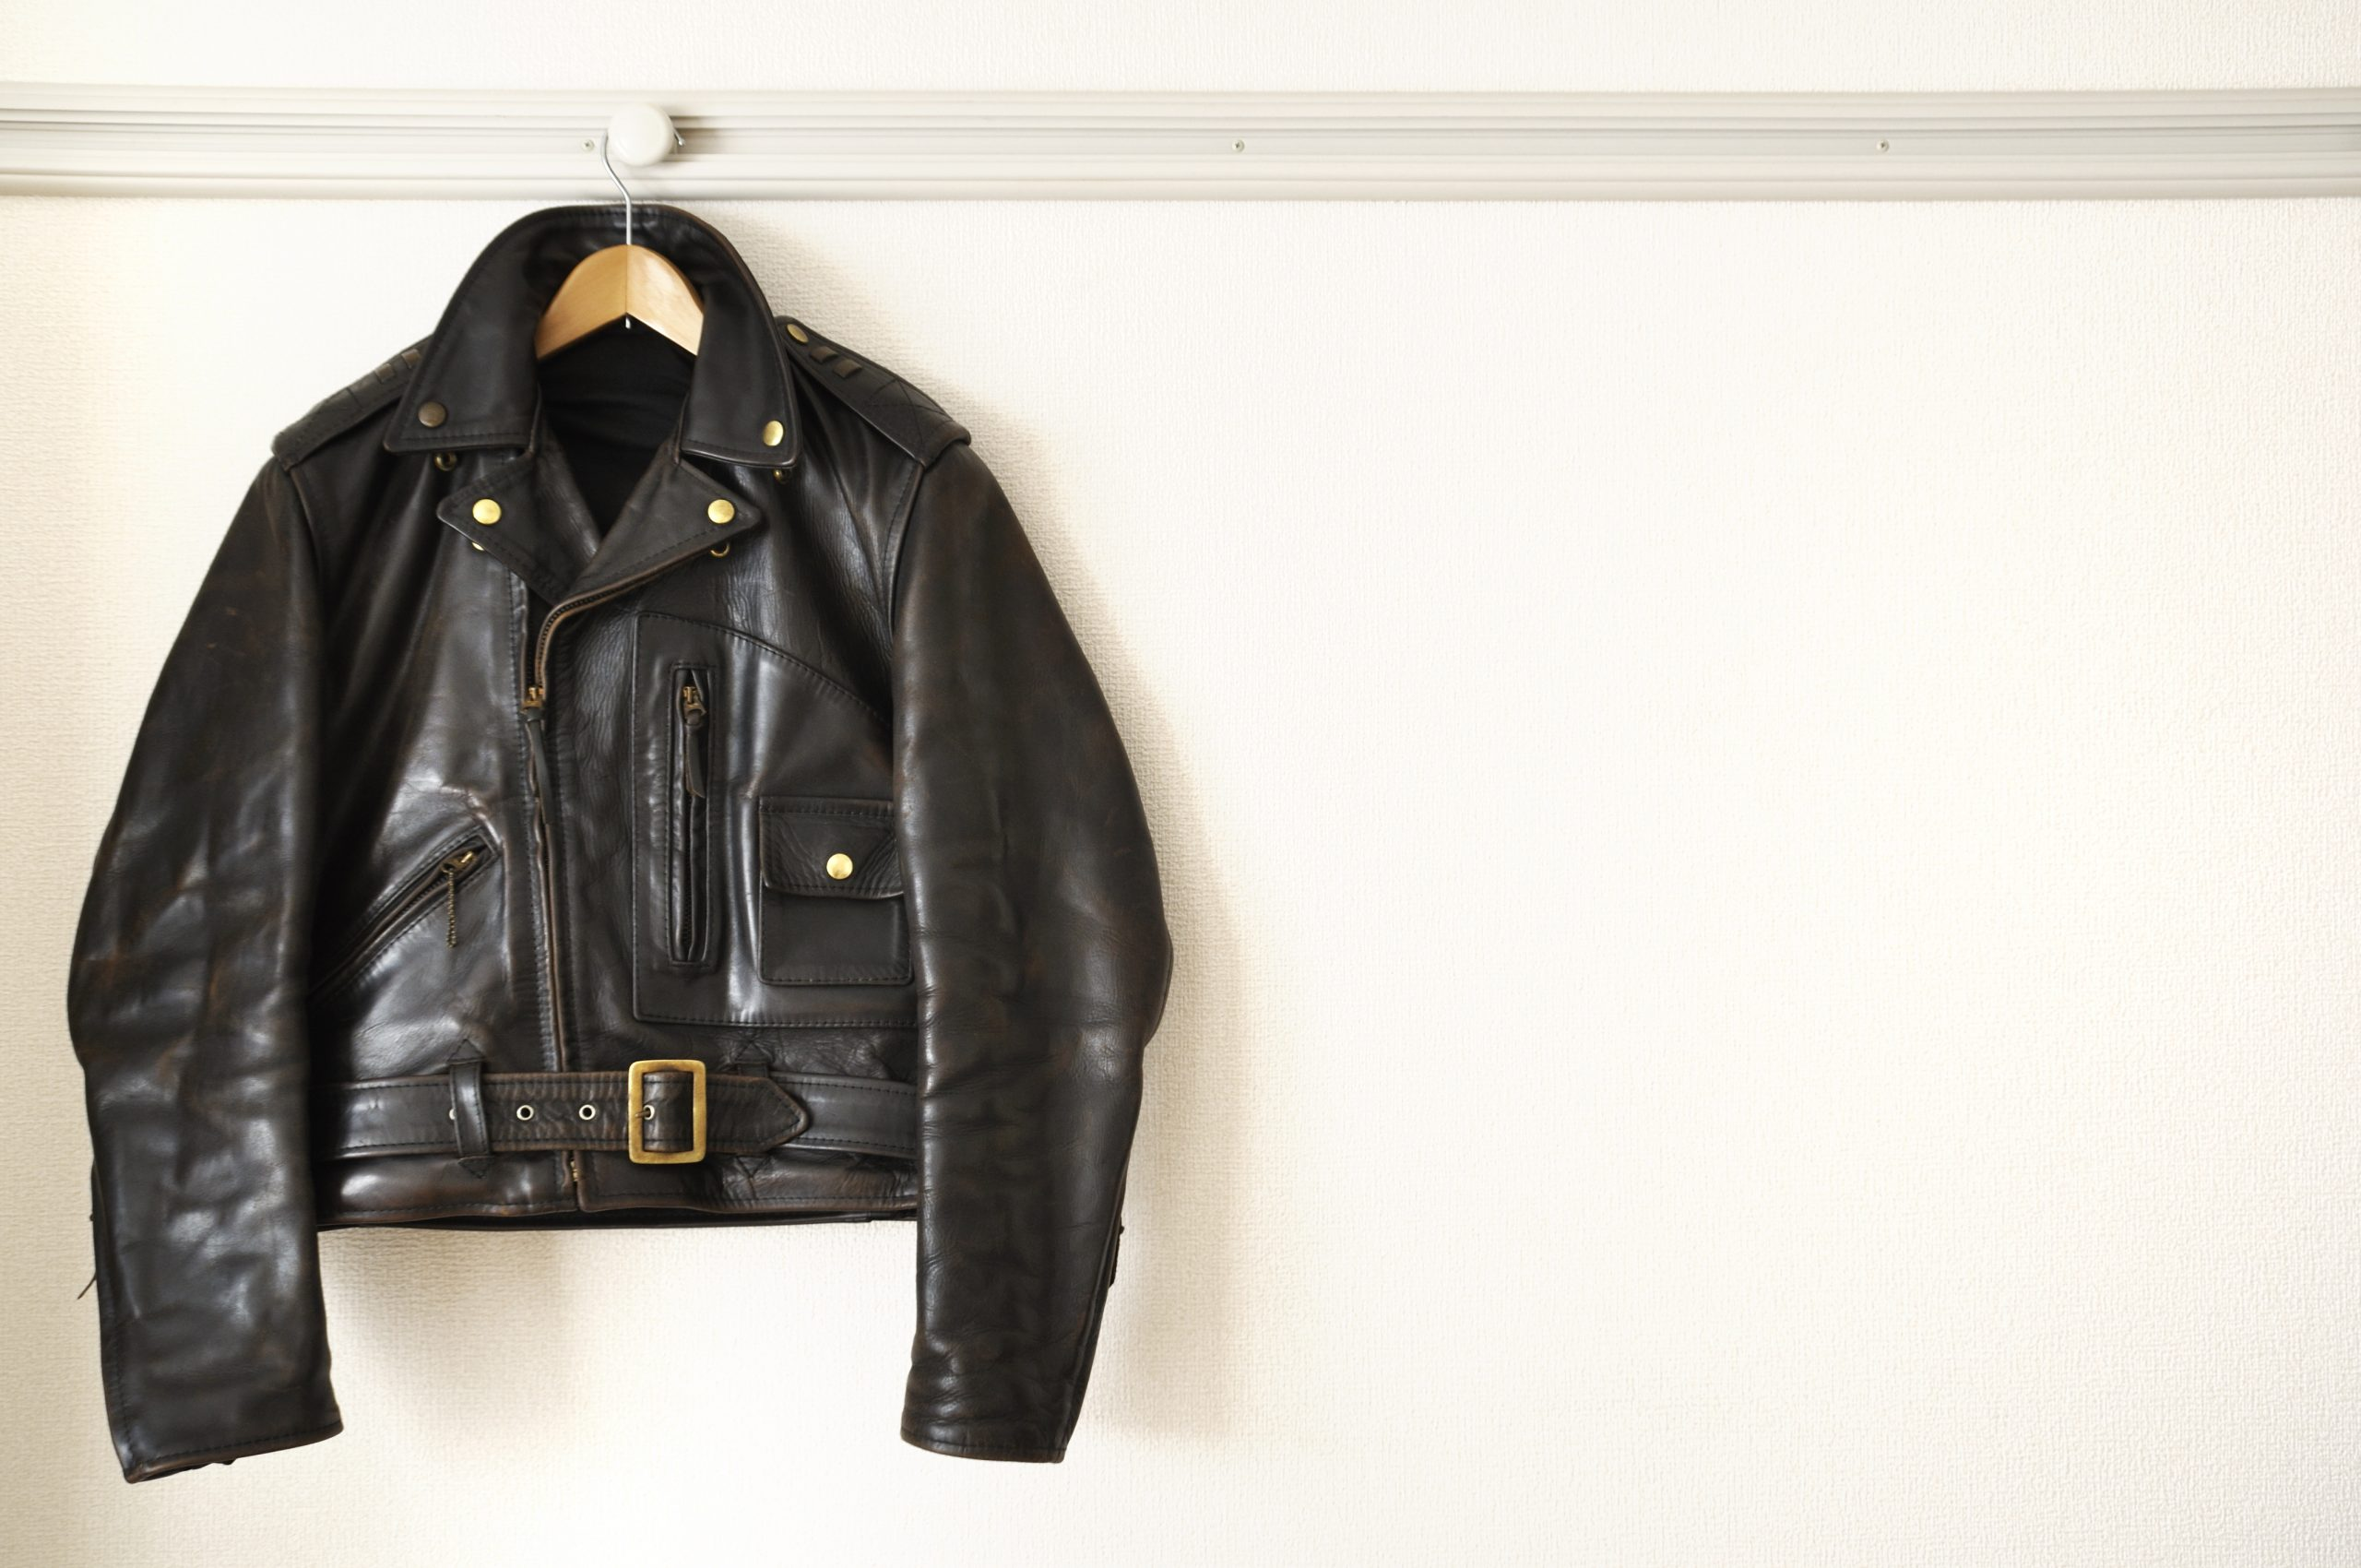 Look and feel cool in your leather jacket